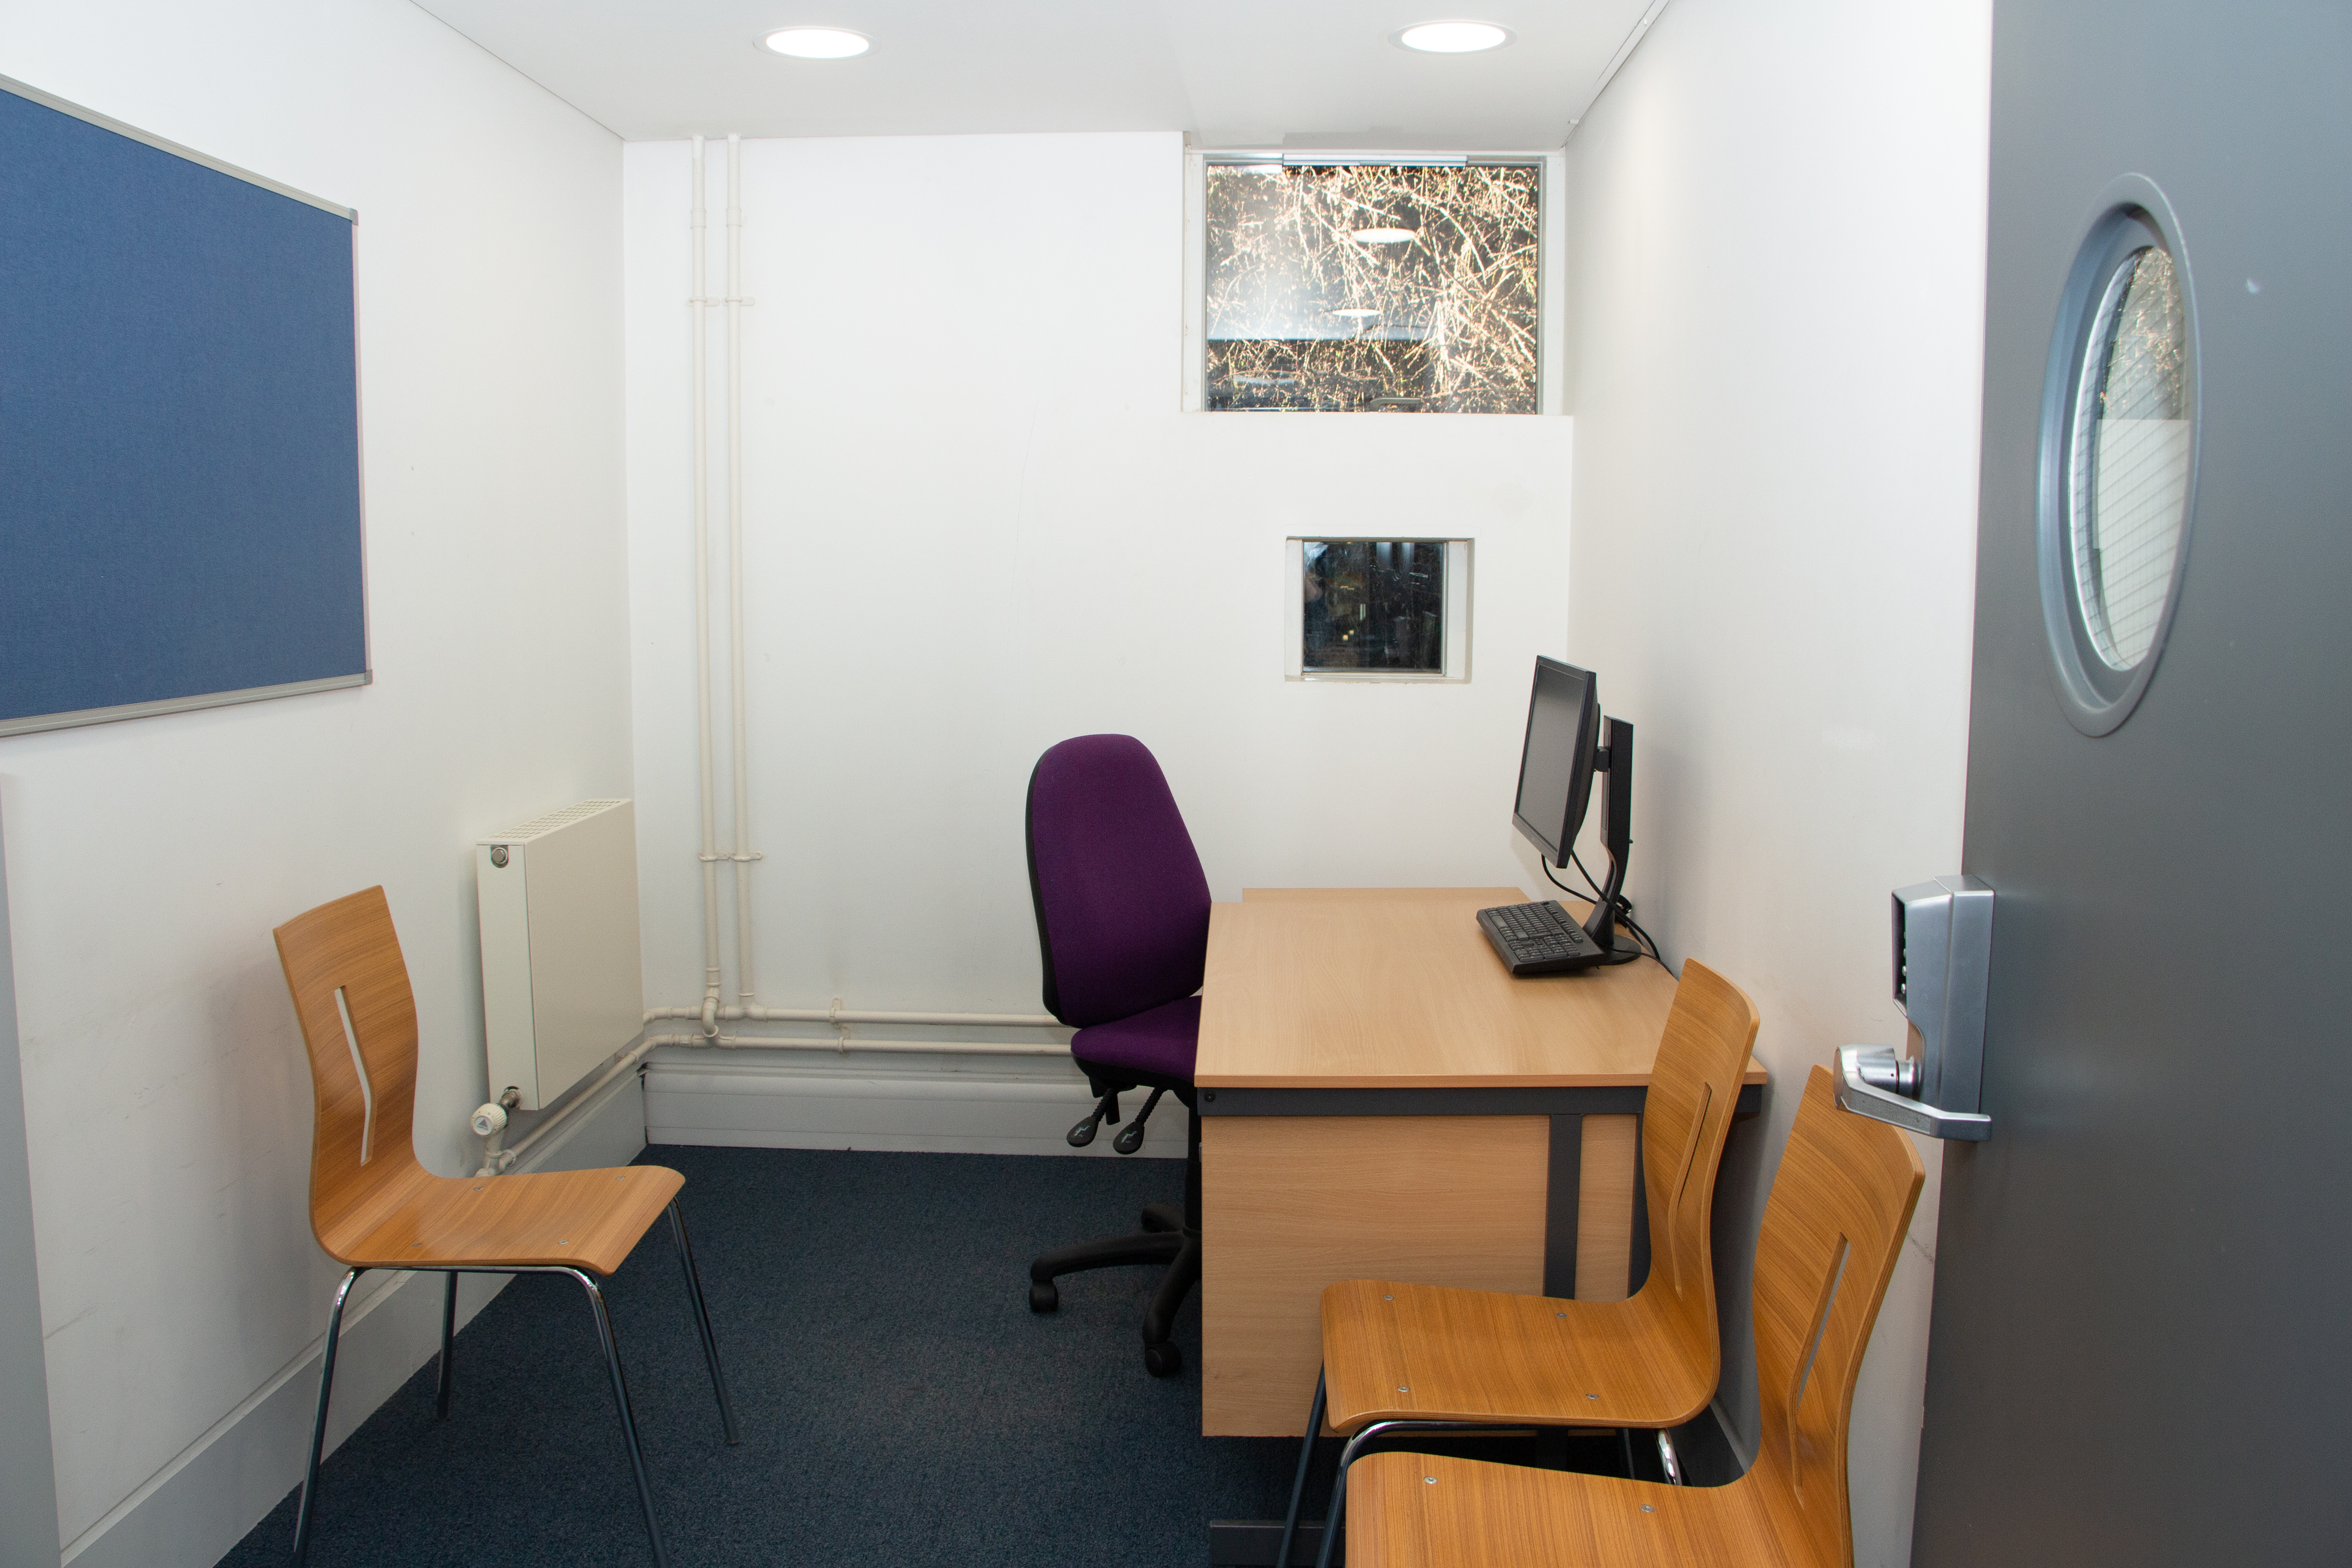 Small room with four chairs and desk